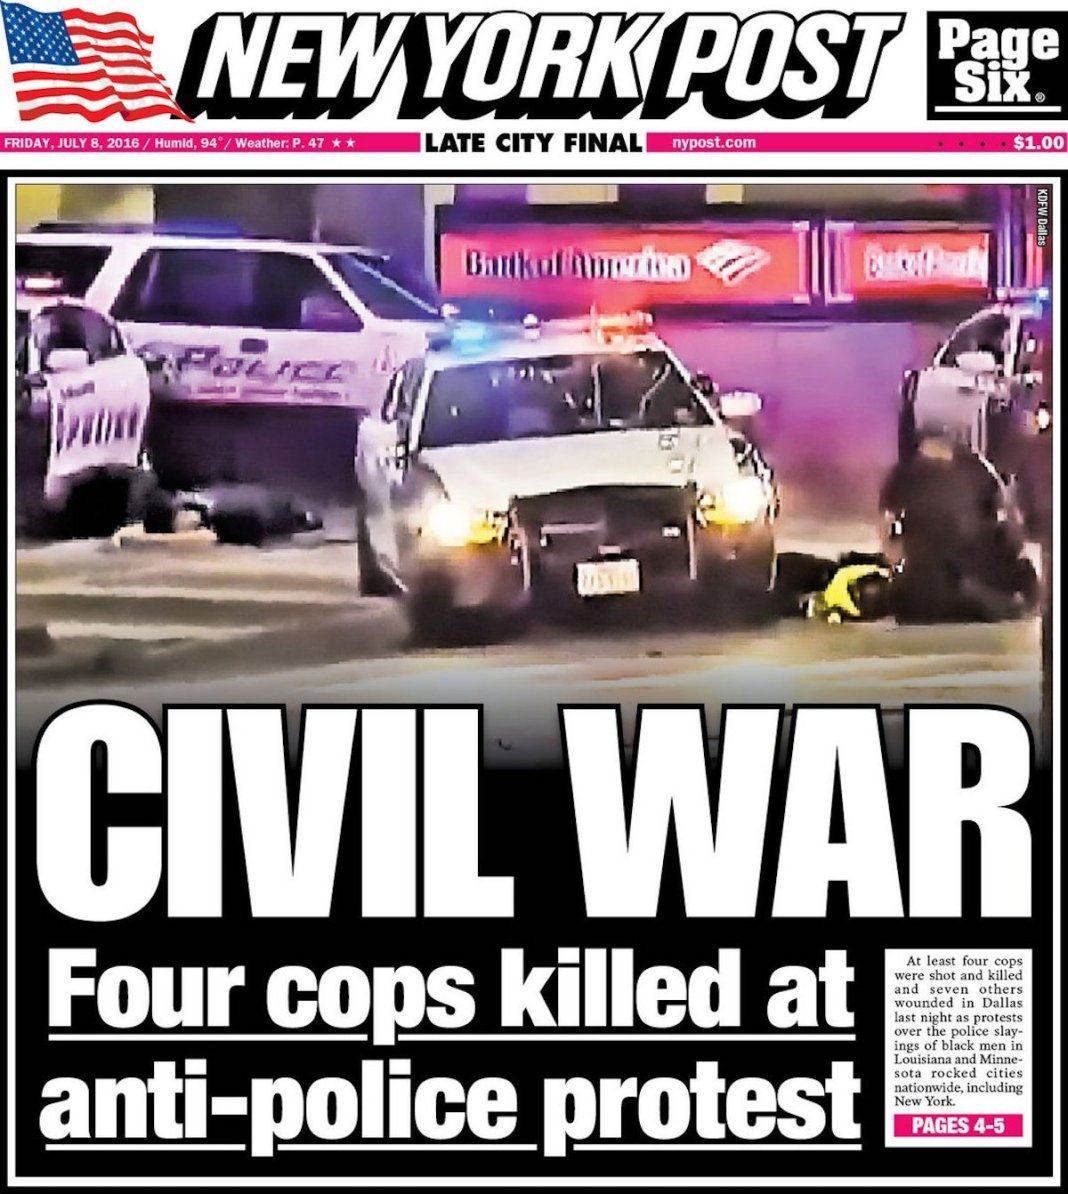 The New York Post front page after the Dallas attack shows the powerful fears this event has been used to awaken.